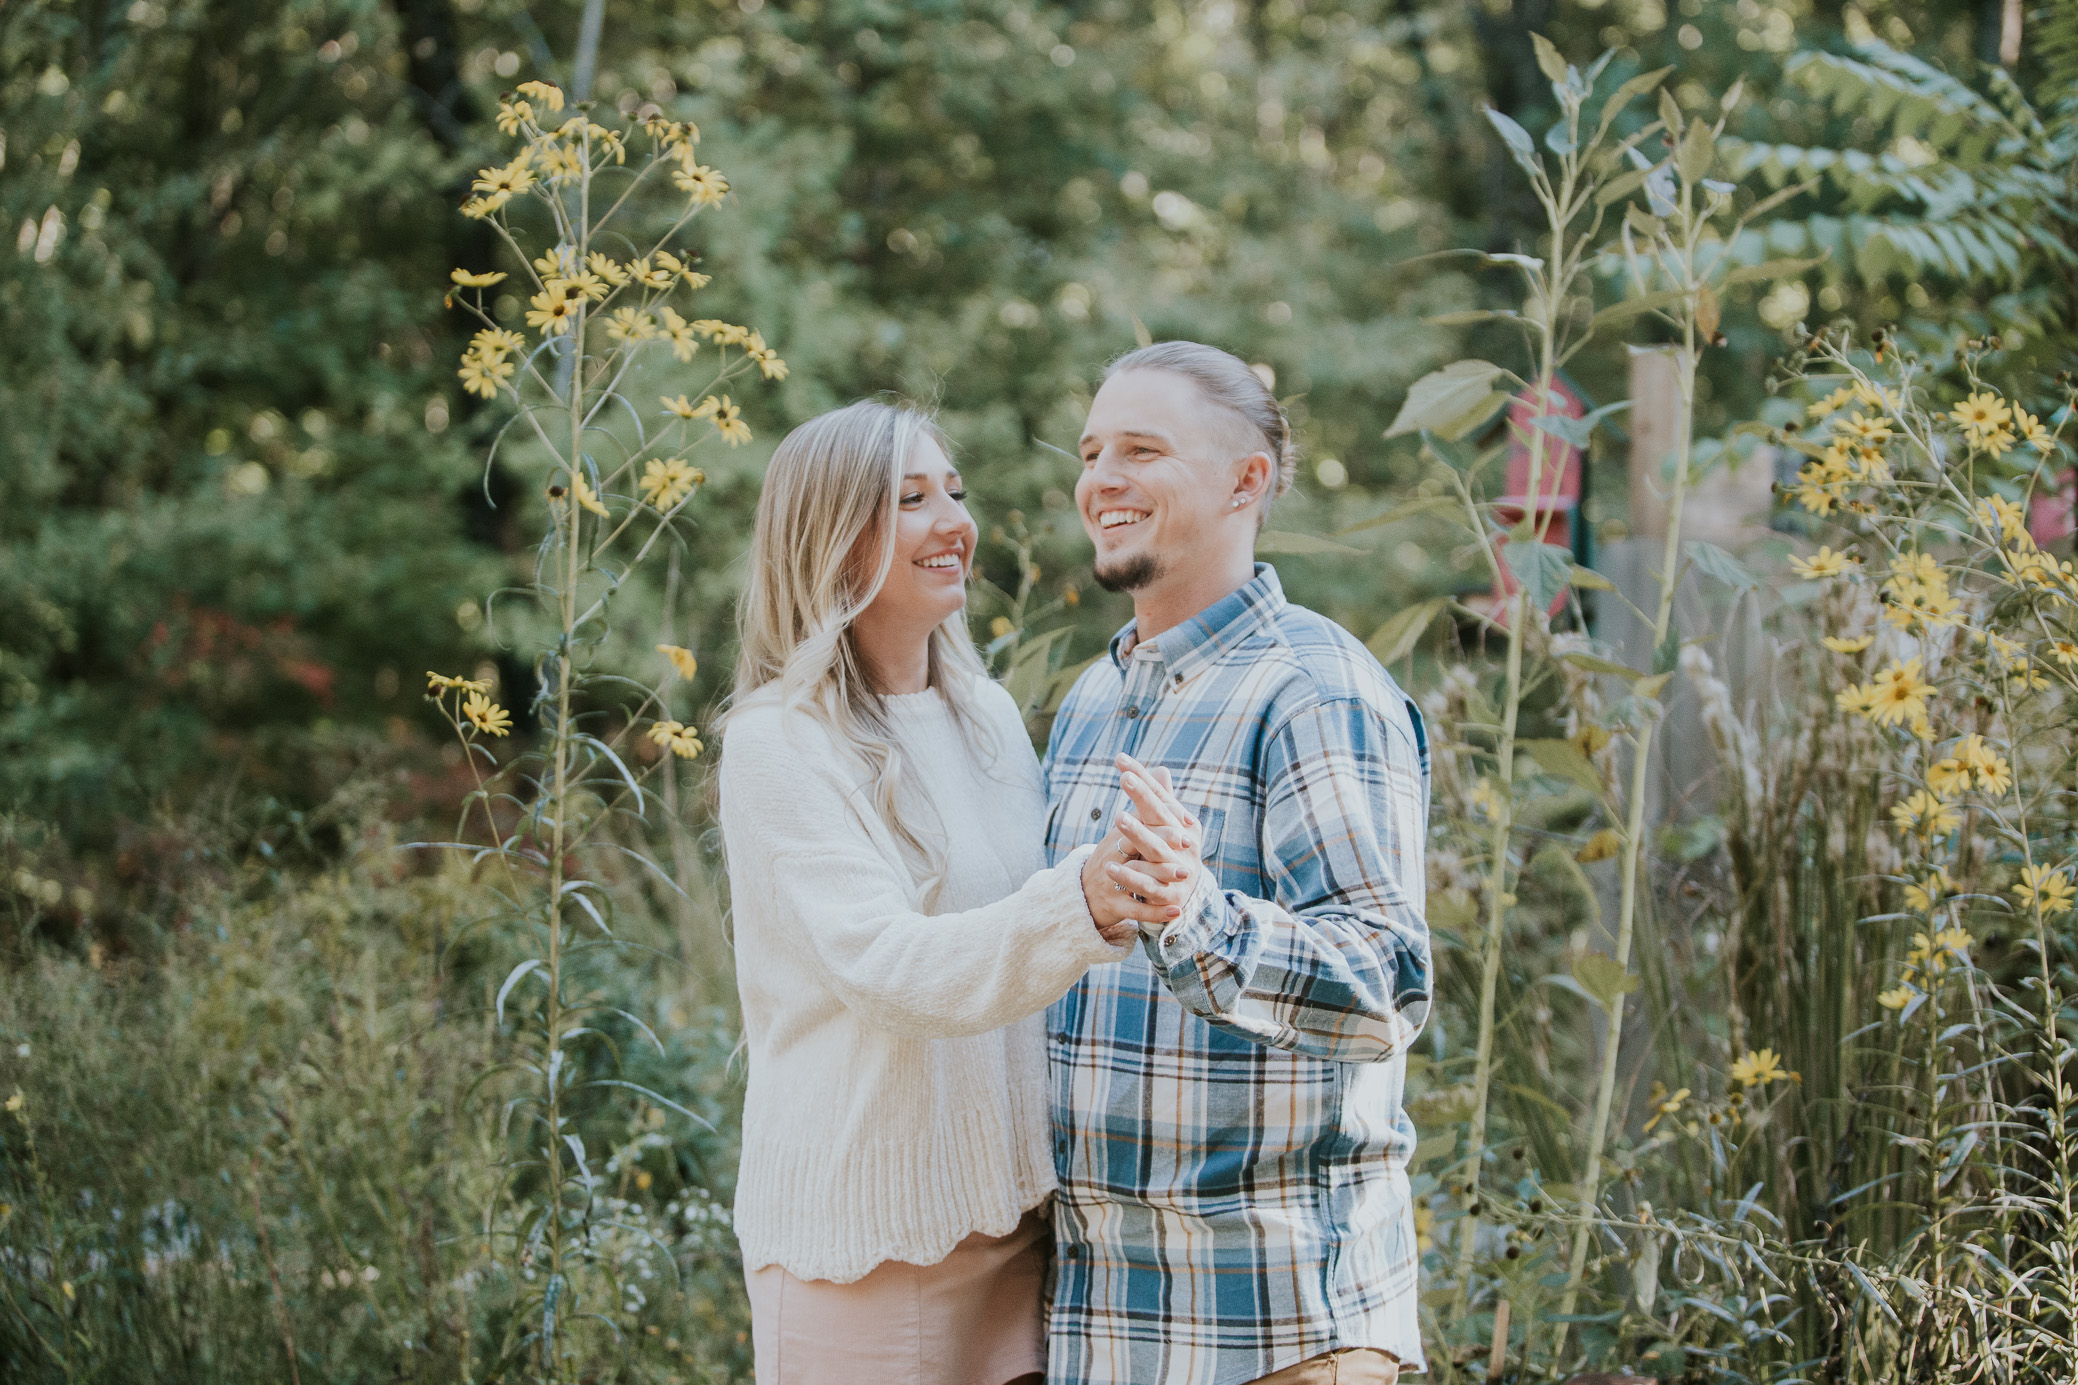 Turkey Creek engagement session photography in Pinson, Alabama by David A. Smith of DSmithImages Wedding Photography, Portraits, and Events in the Birmingham, Alabam area.